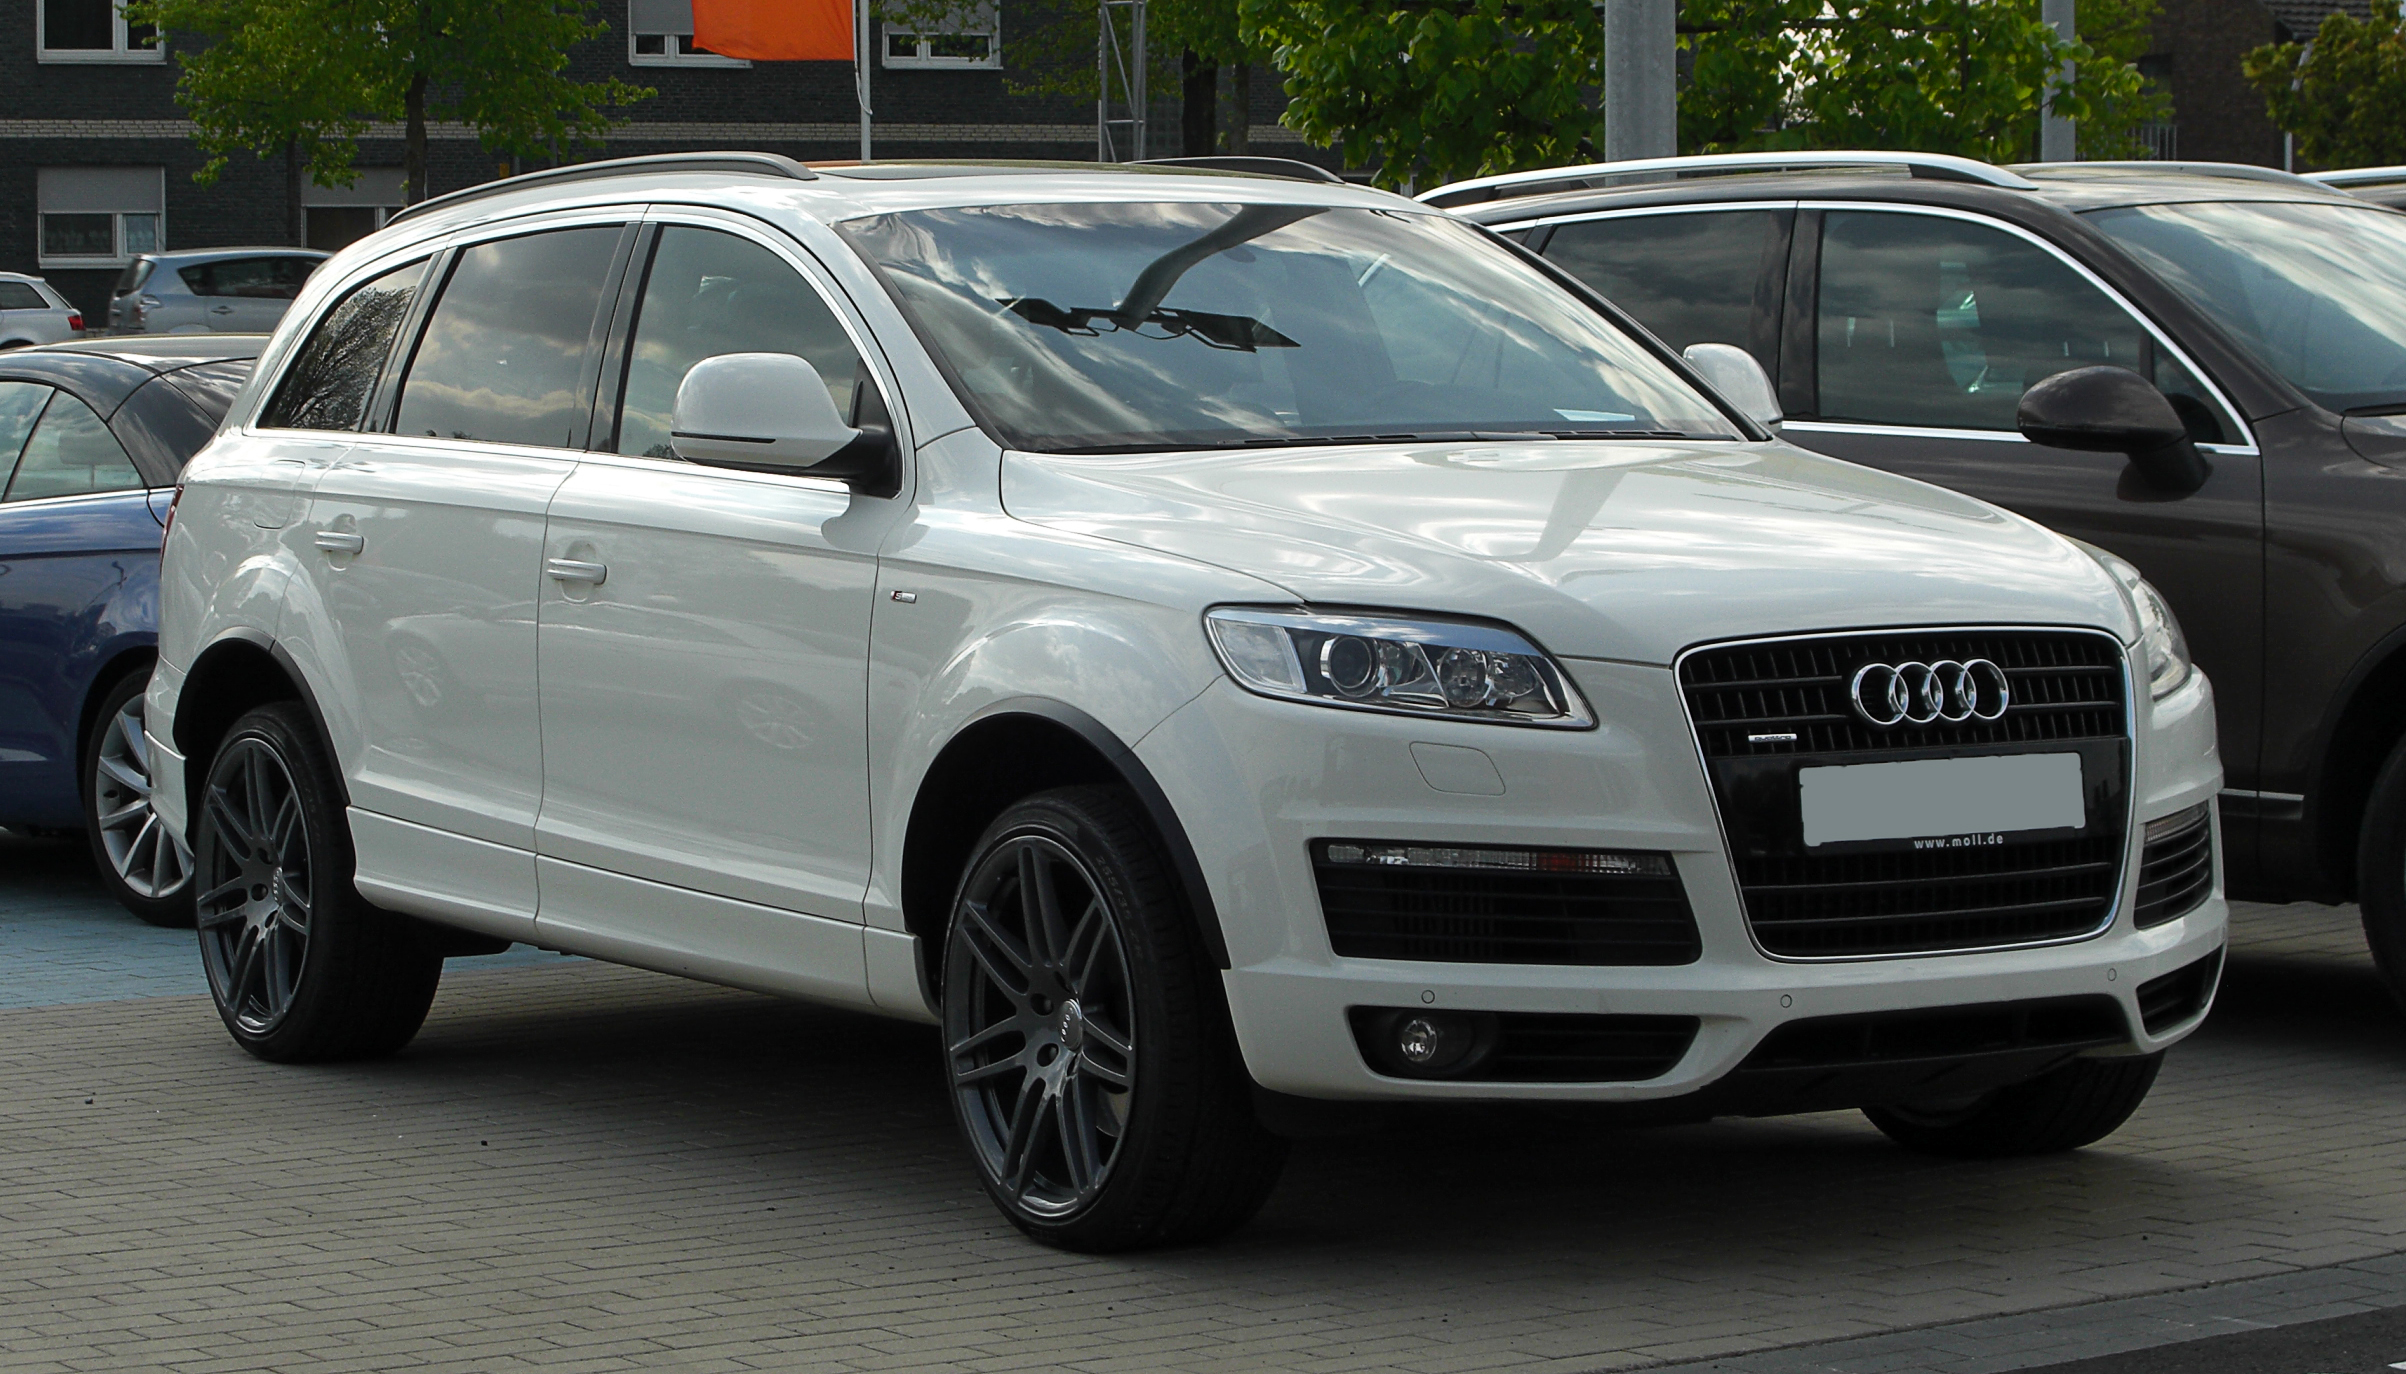 File Audi Q7 S Line Frontansicht 17 April 2011